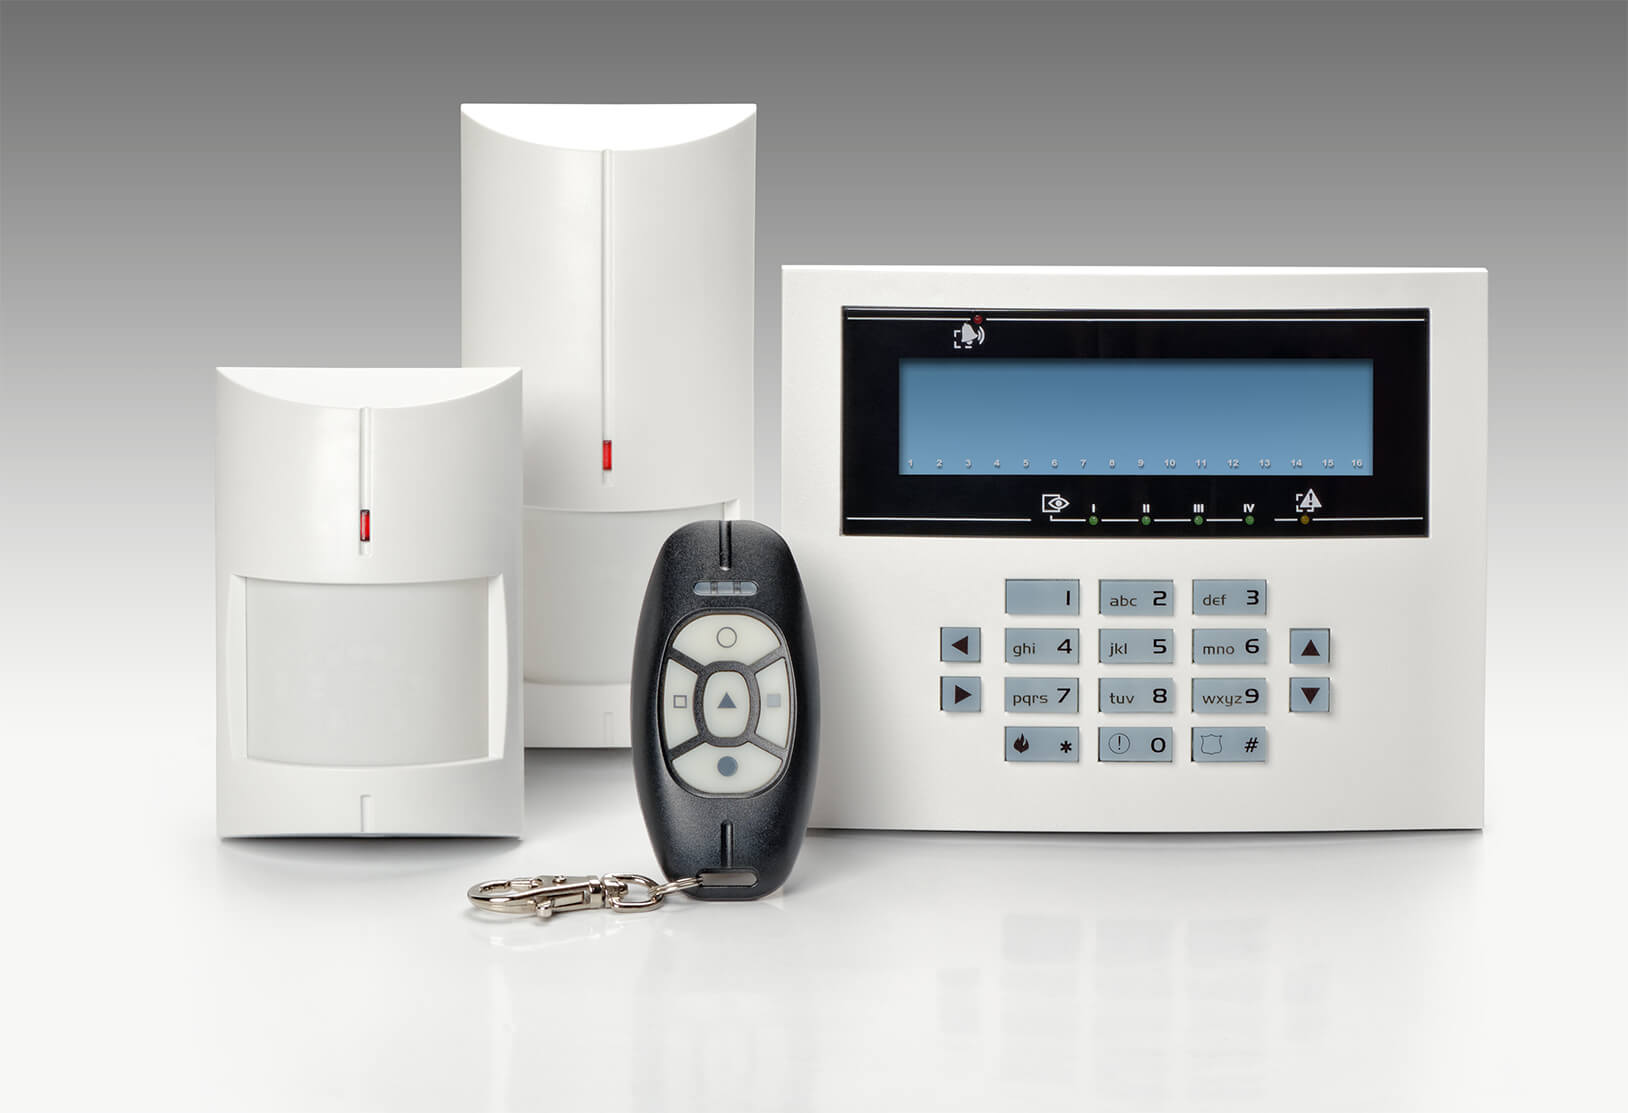 Business & Residential NSI / NACOSS Approved Burglar Alarms In Winchmore Hill N21 - Local Winchmore Hill N21 security company.Call 02078872244 - Dedicated to Safety & Security. Companies, shops and homes ..